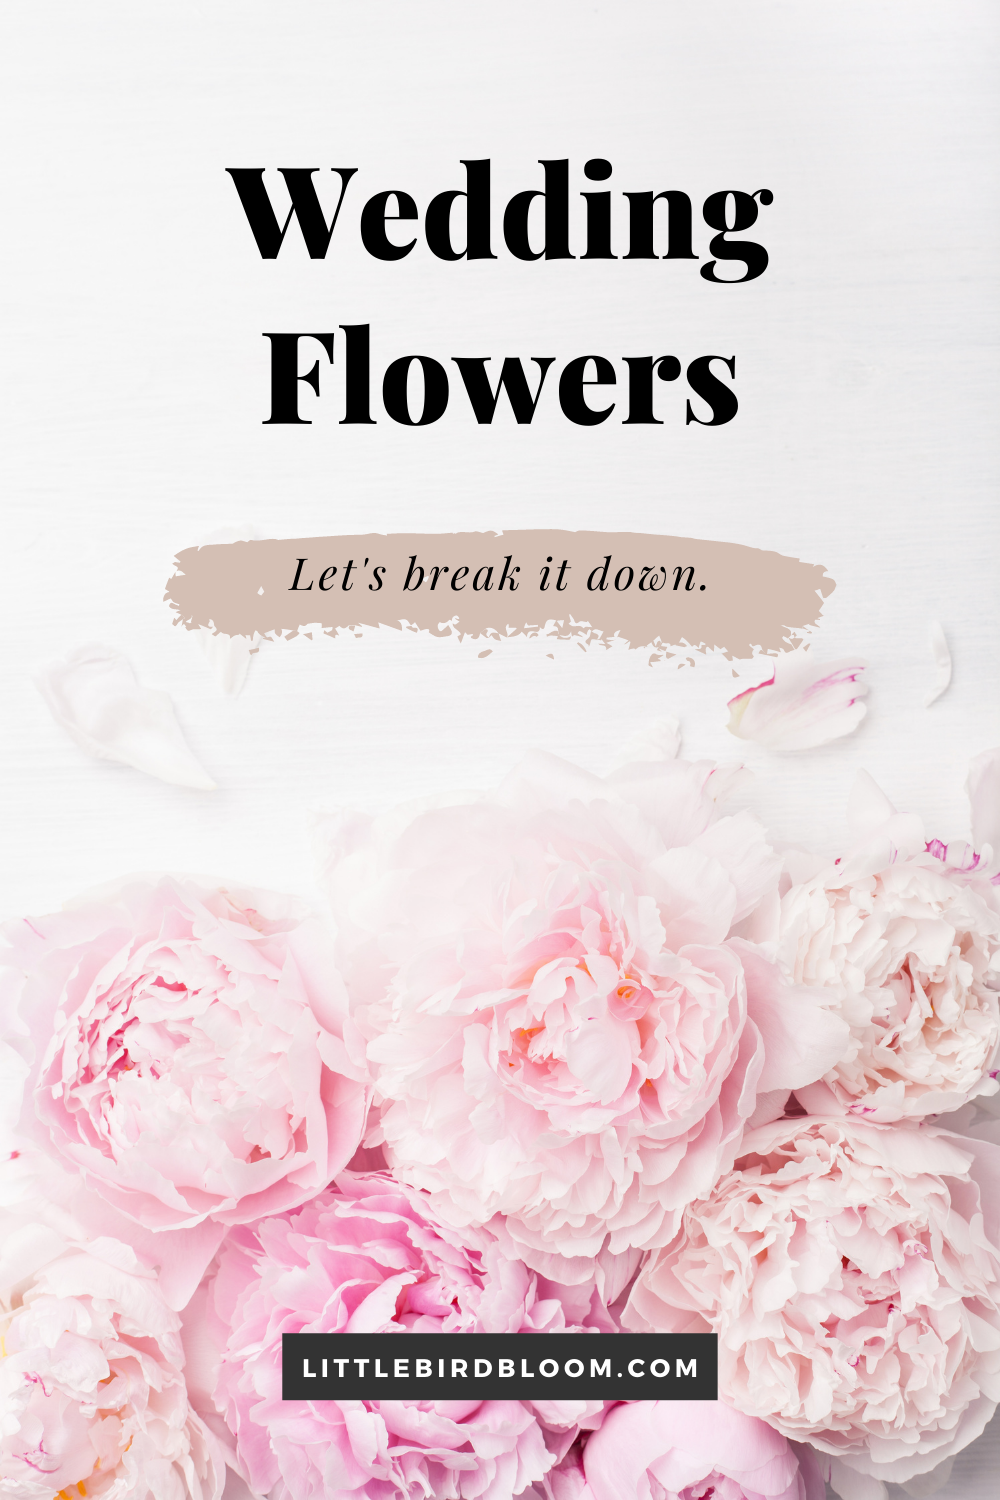 why do wedding flowers cost so much